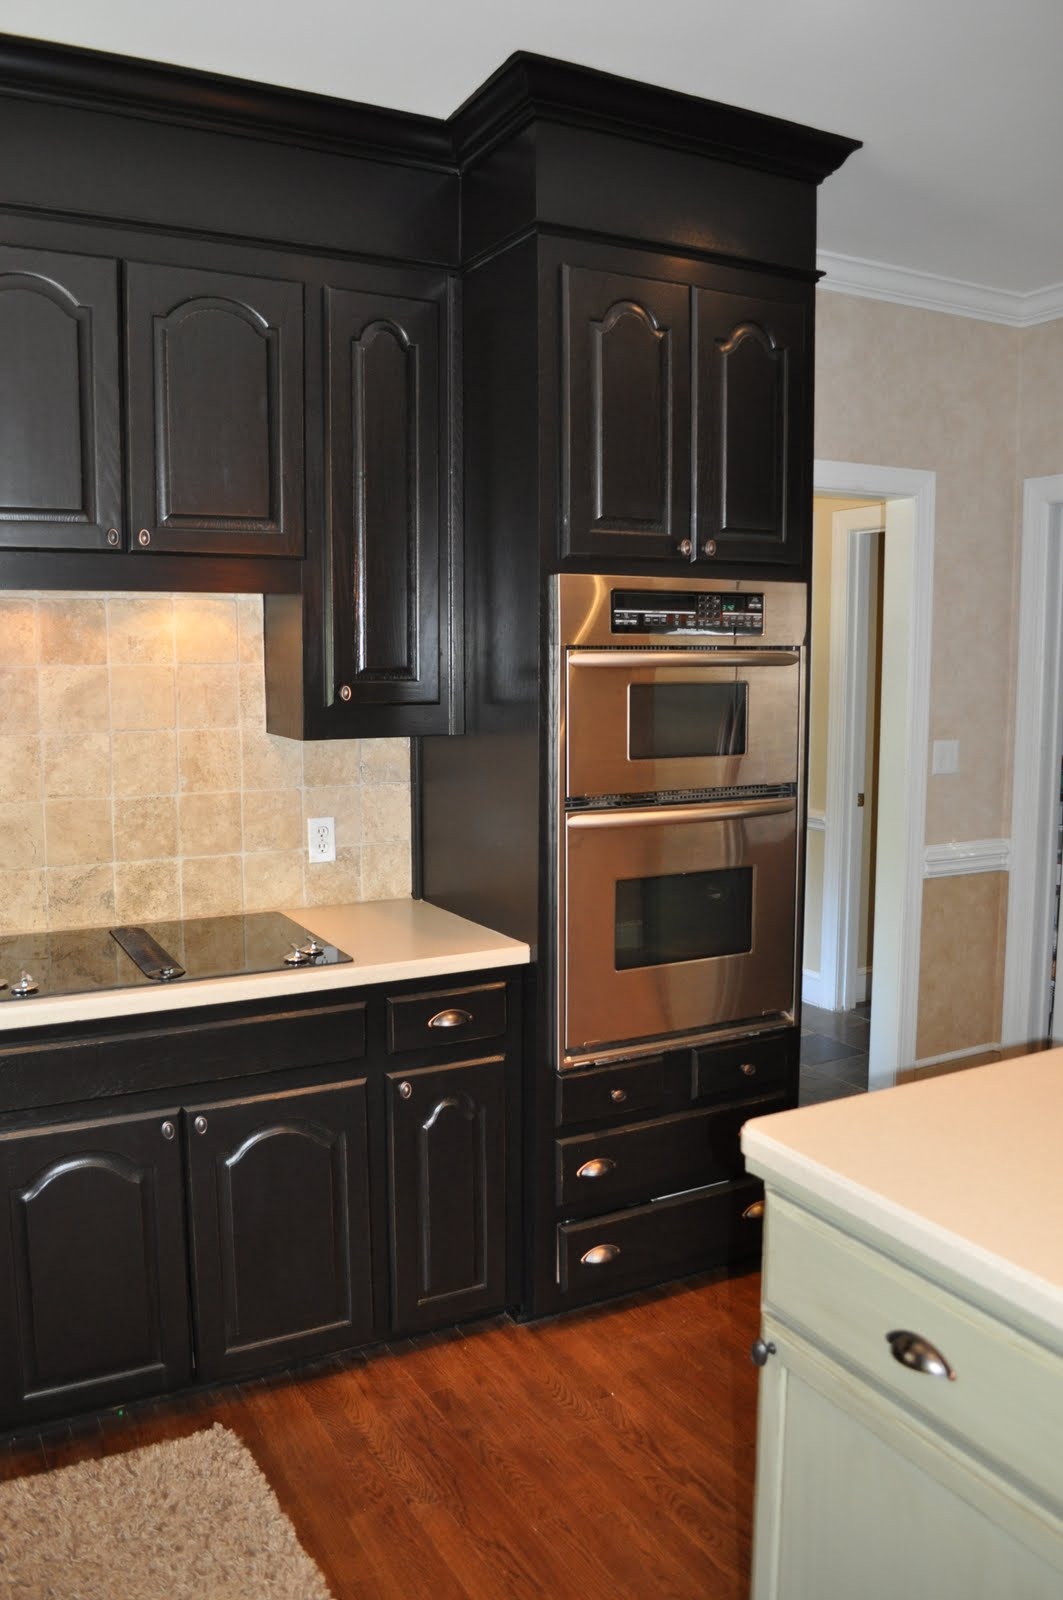 painted kitchen cabinets with black appliances - photo #23